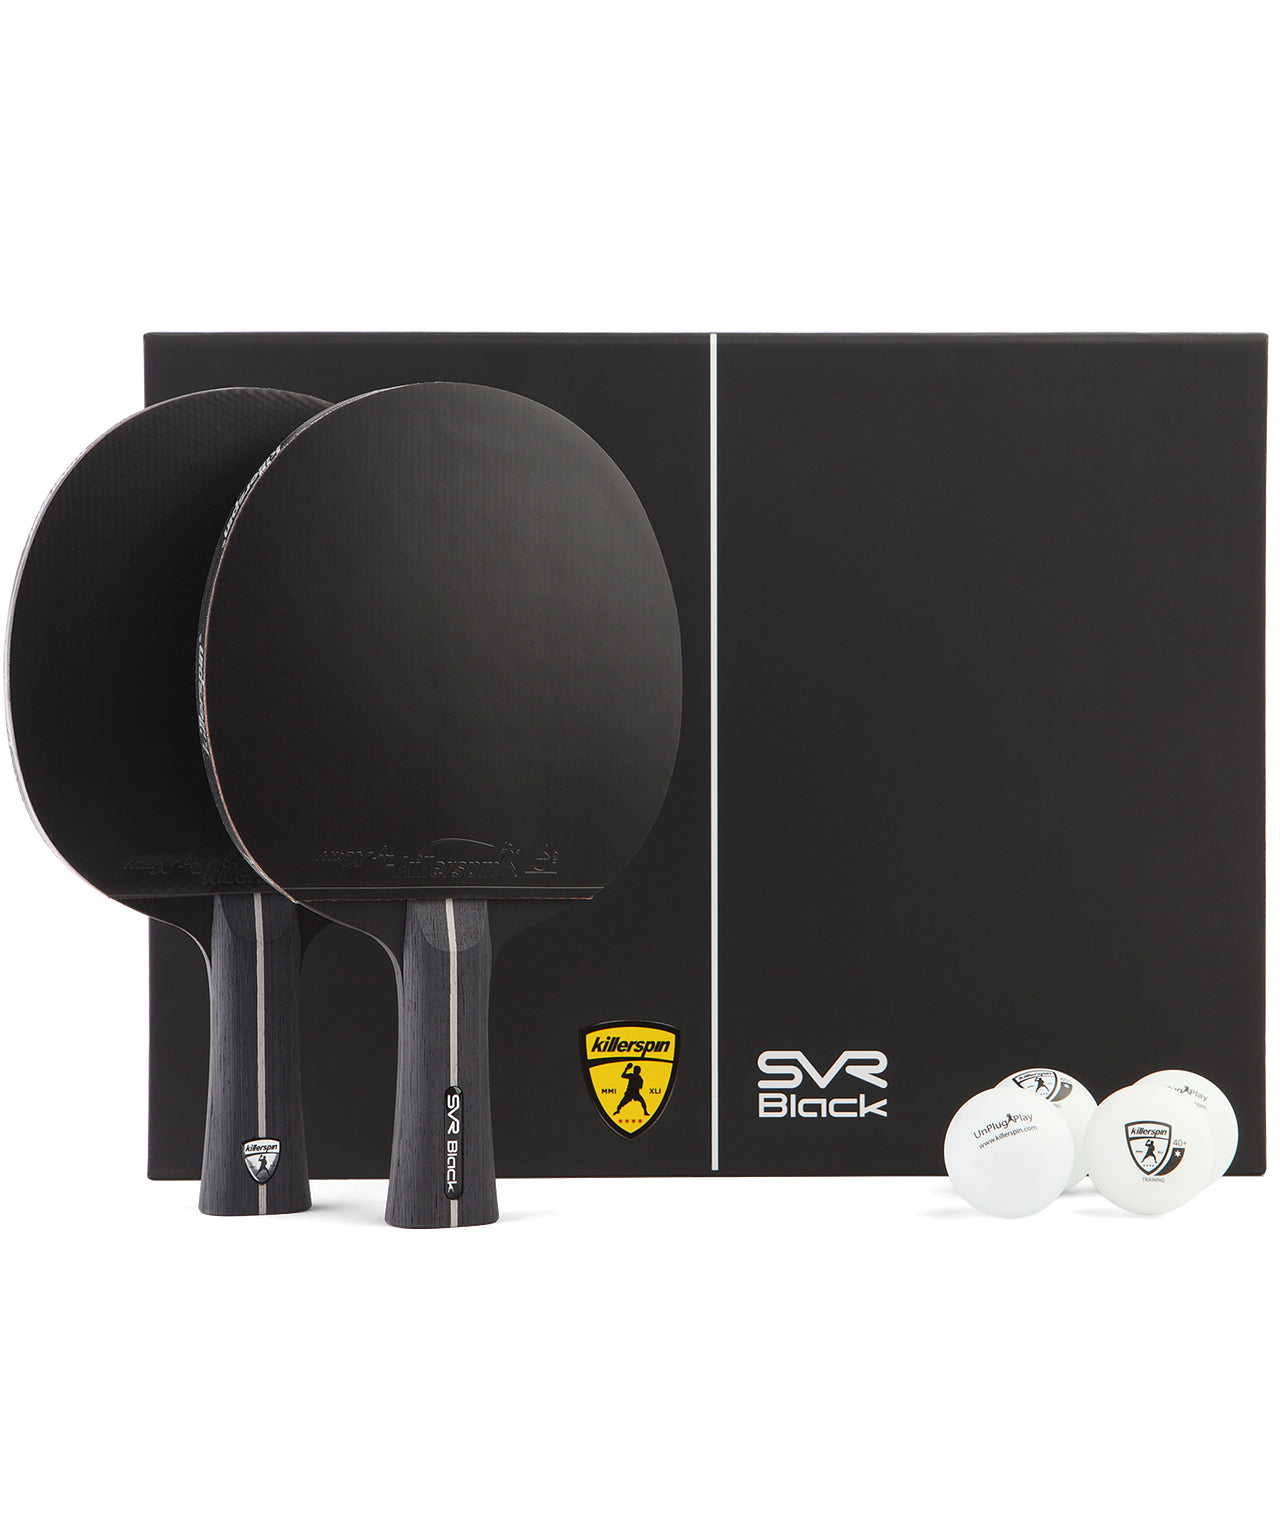 Killerspin SVR Ping Pong Paddle Set SVR 2U Black